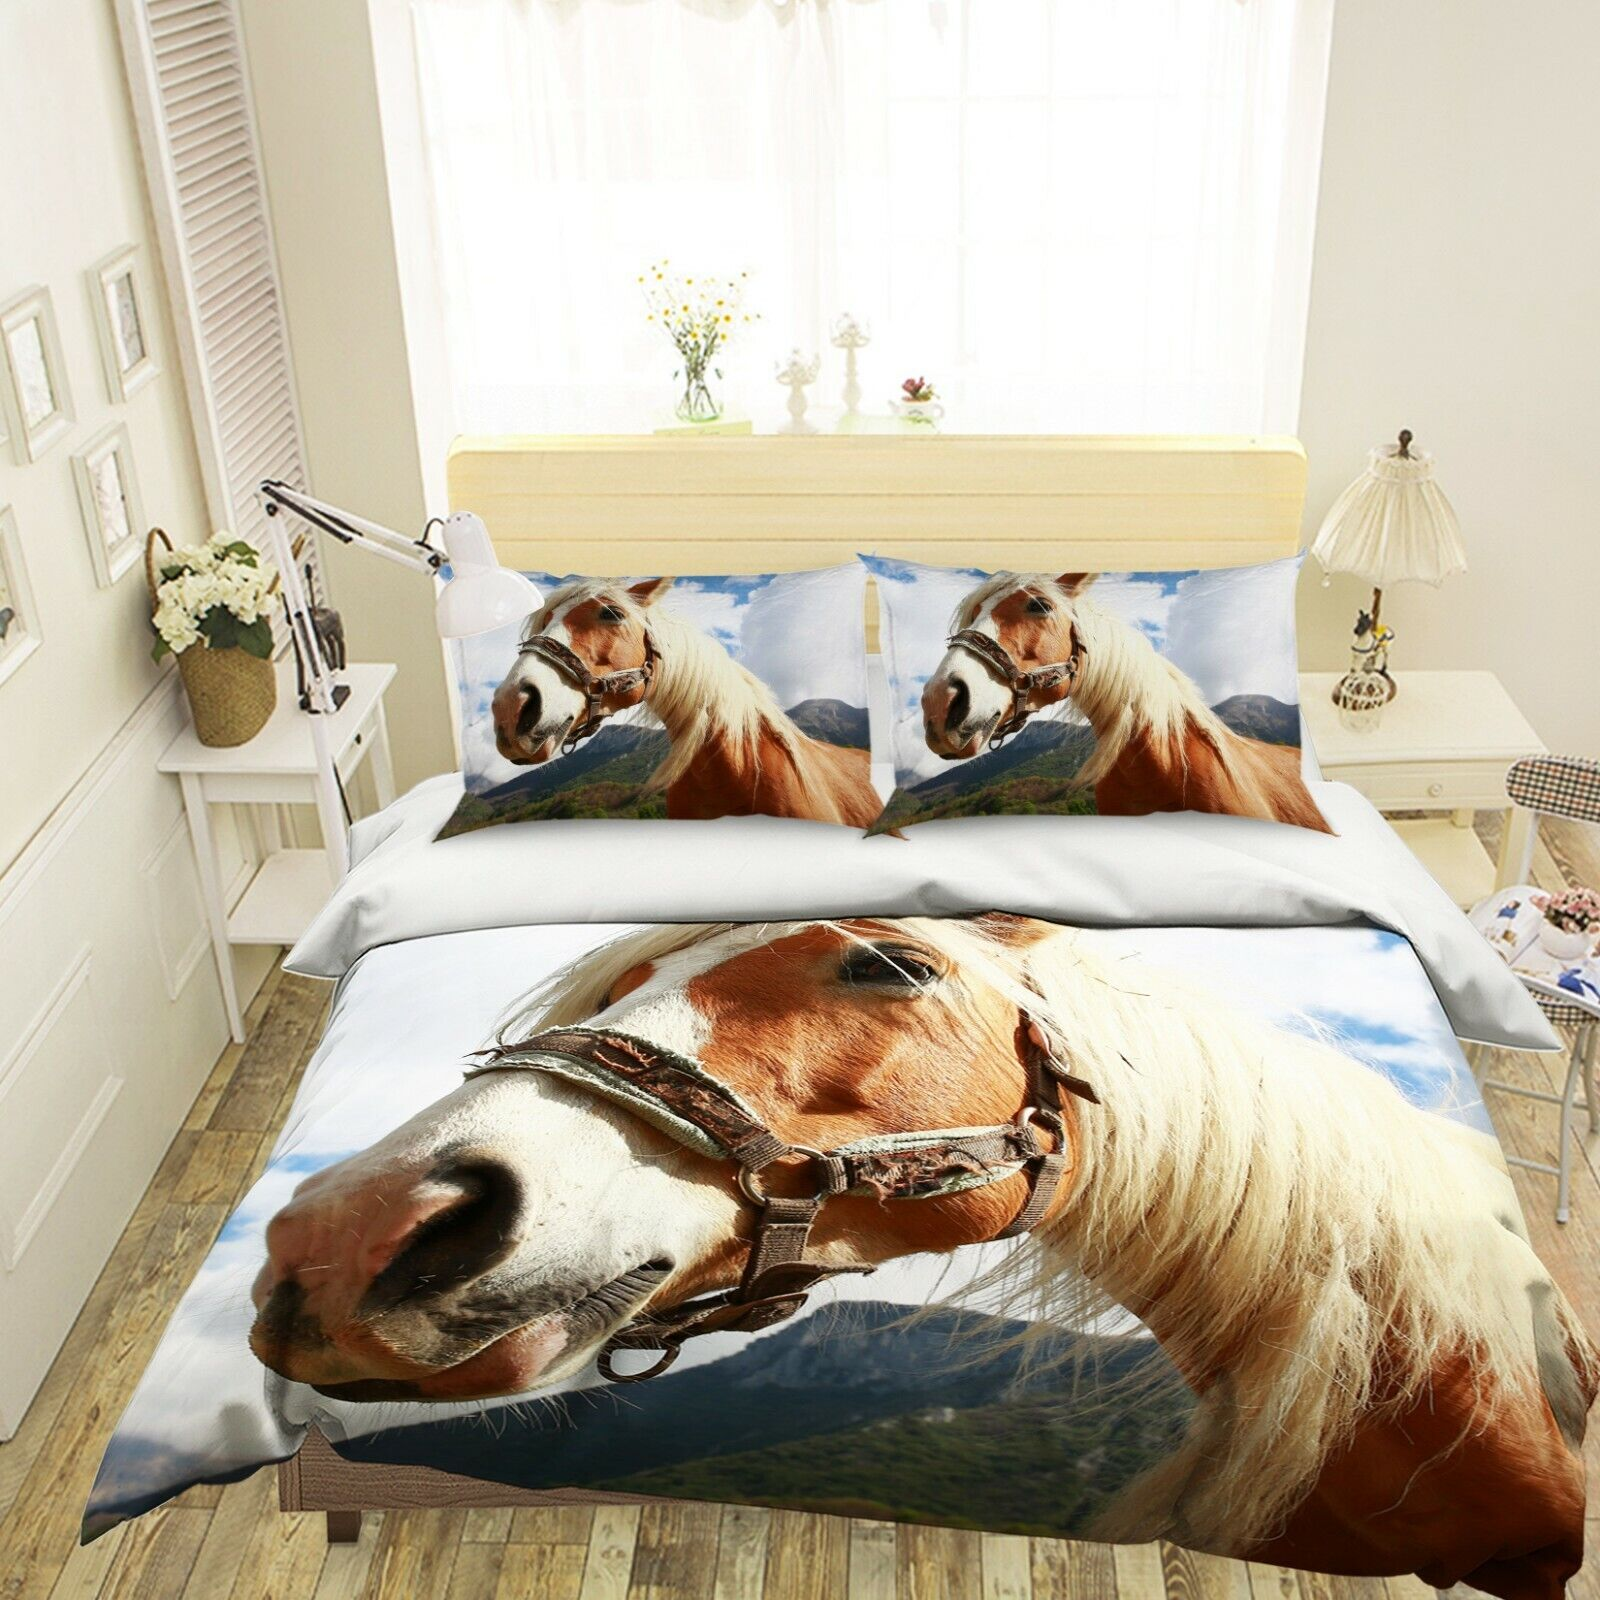 3D Horse N62 Animal Bett Pillowcases Quilt Duvet Startseite Königin König Amy